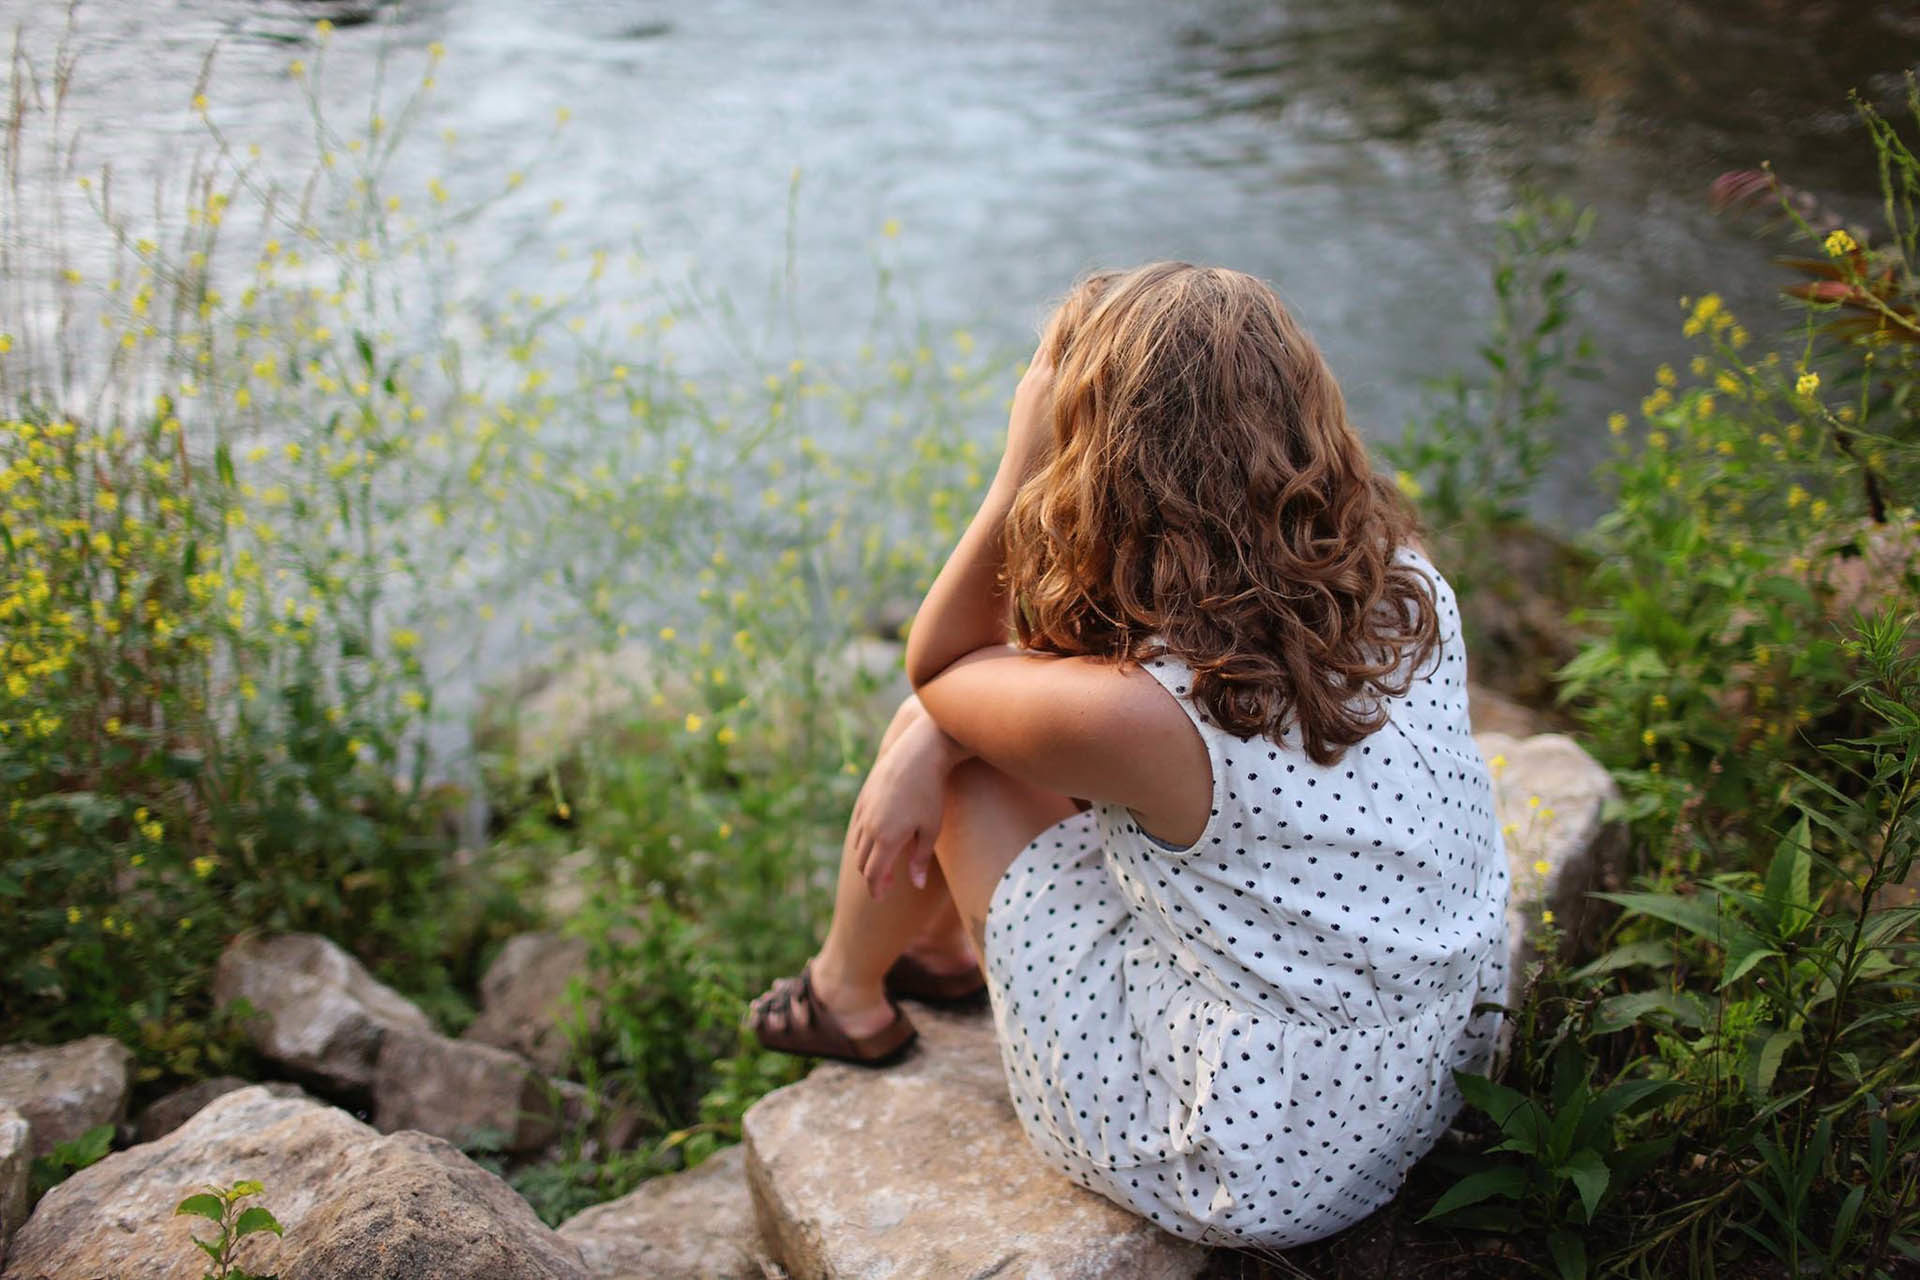 Stressed out: Does chronic tension make you less fertile?